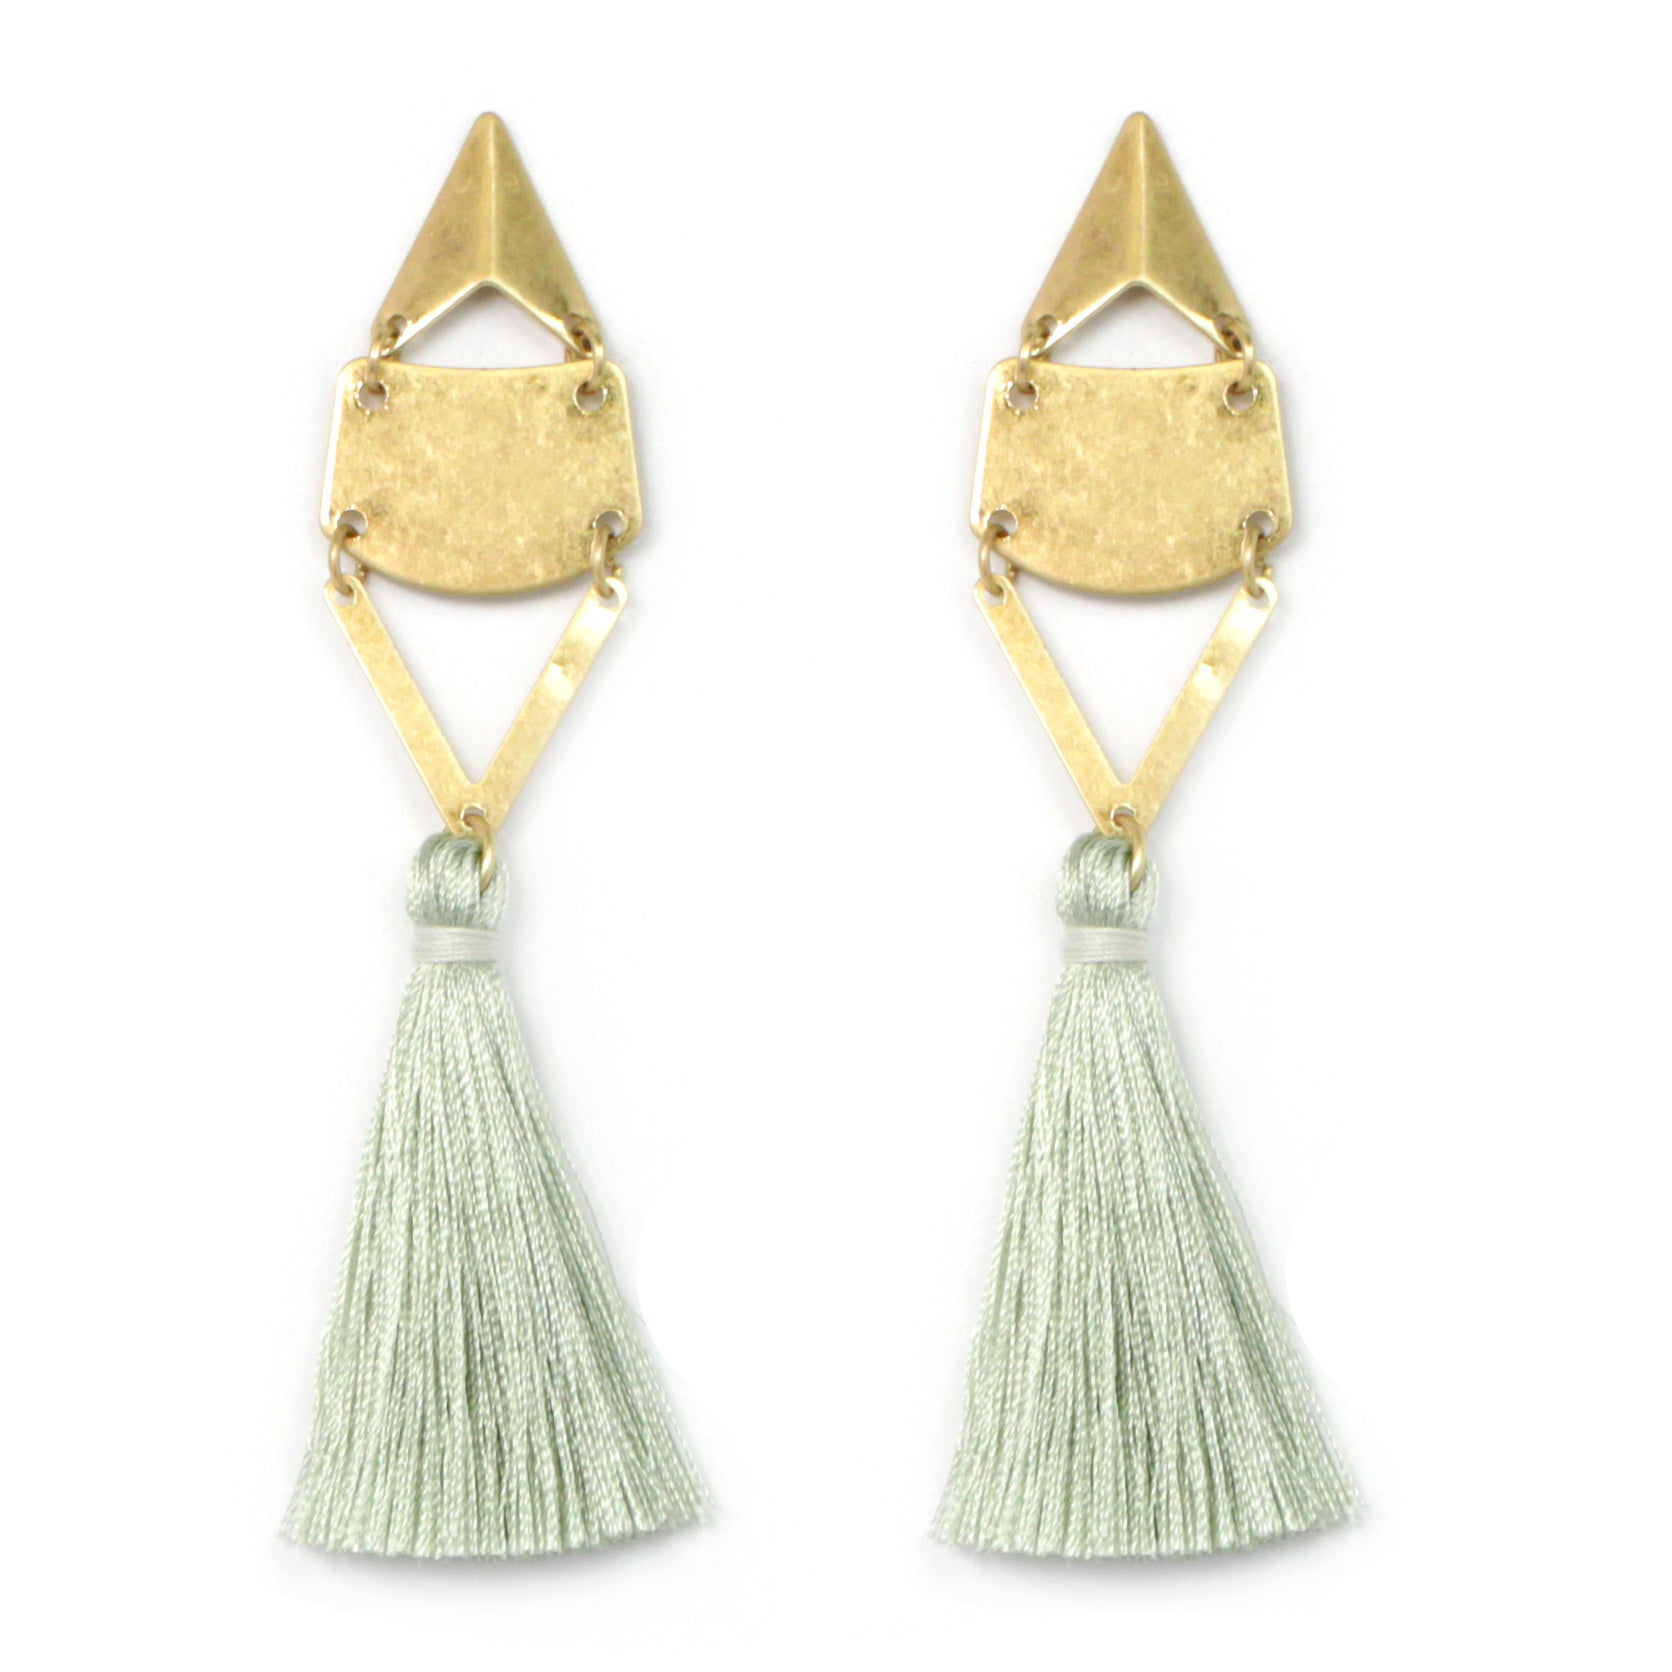 Geometric Metal with Thread Tassel Earrings